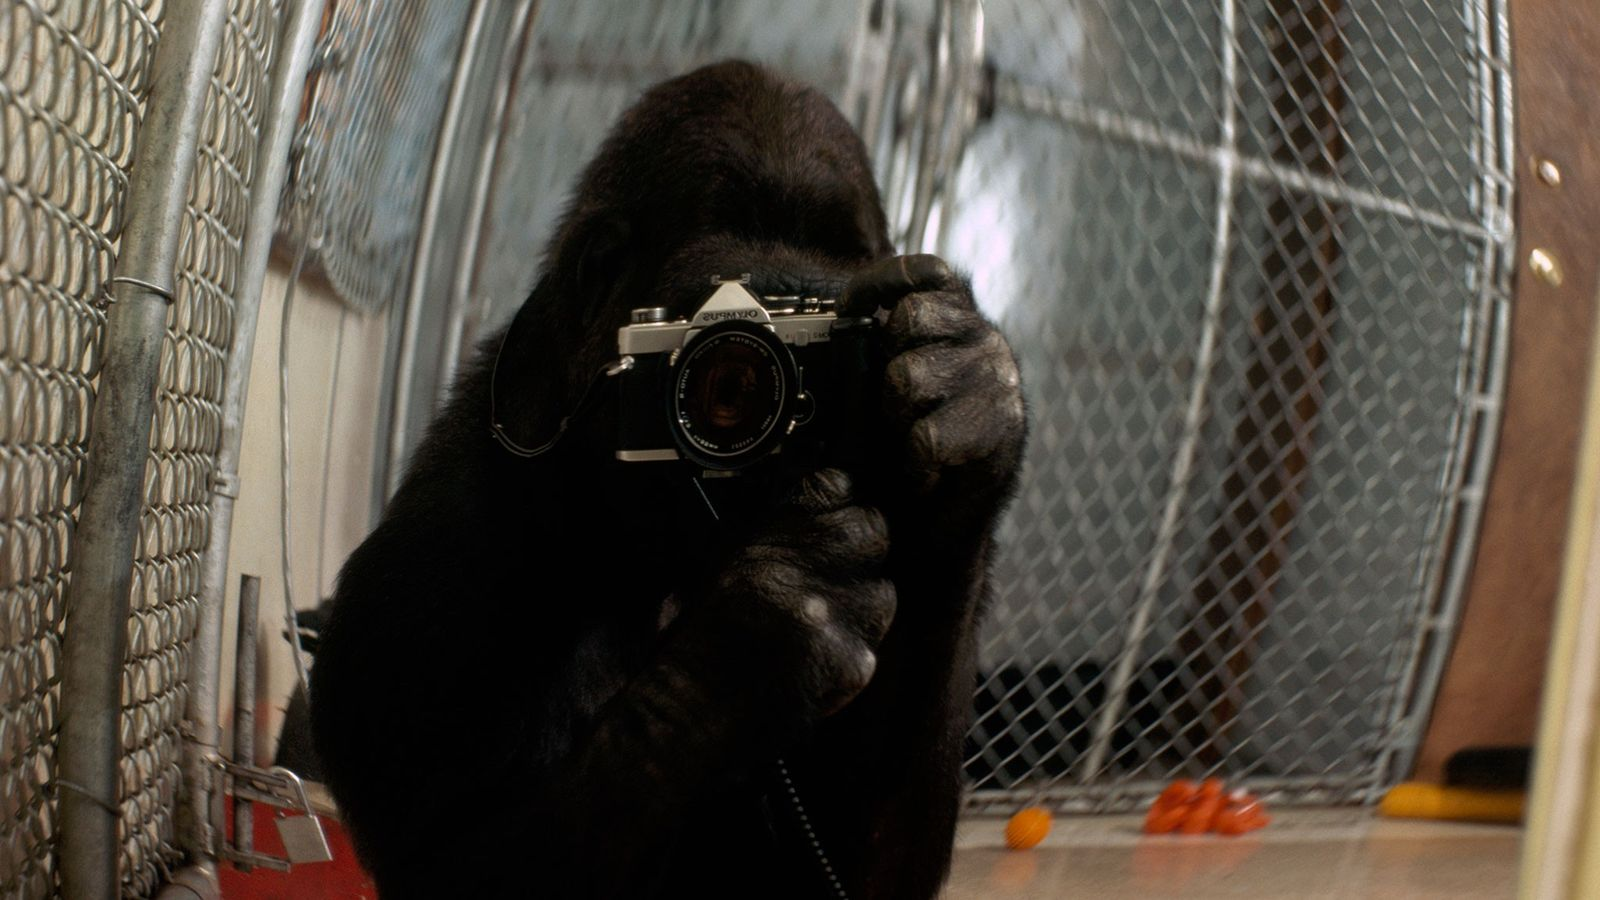 Koko takes a self portrait, an image featured in a 1978 issue of National Geographic magazine.